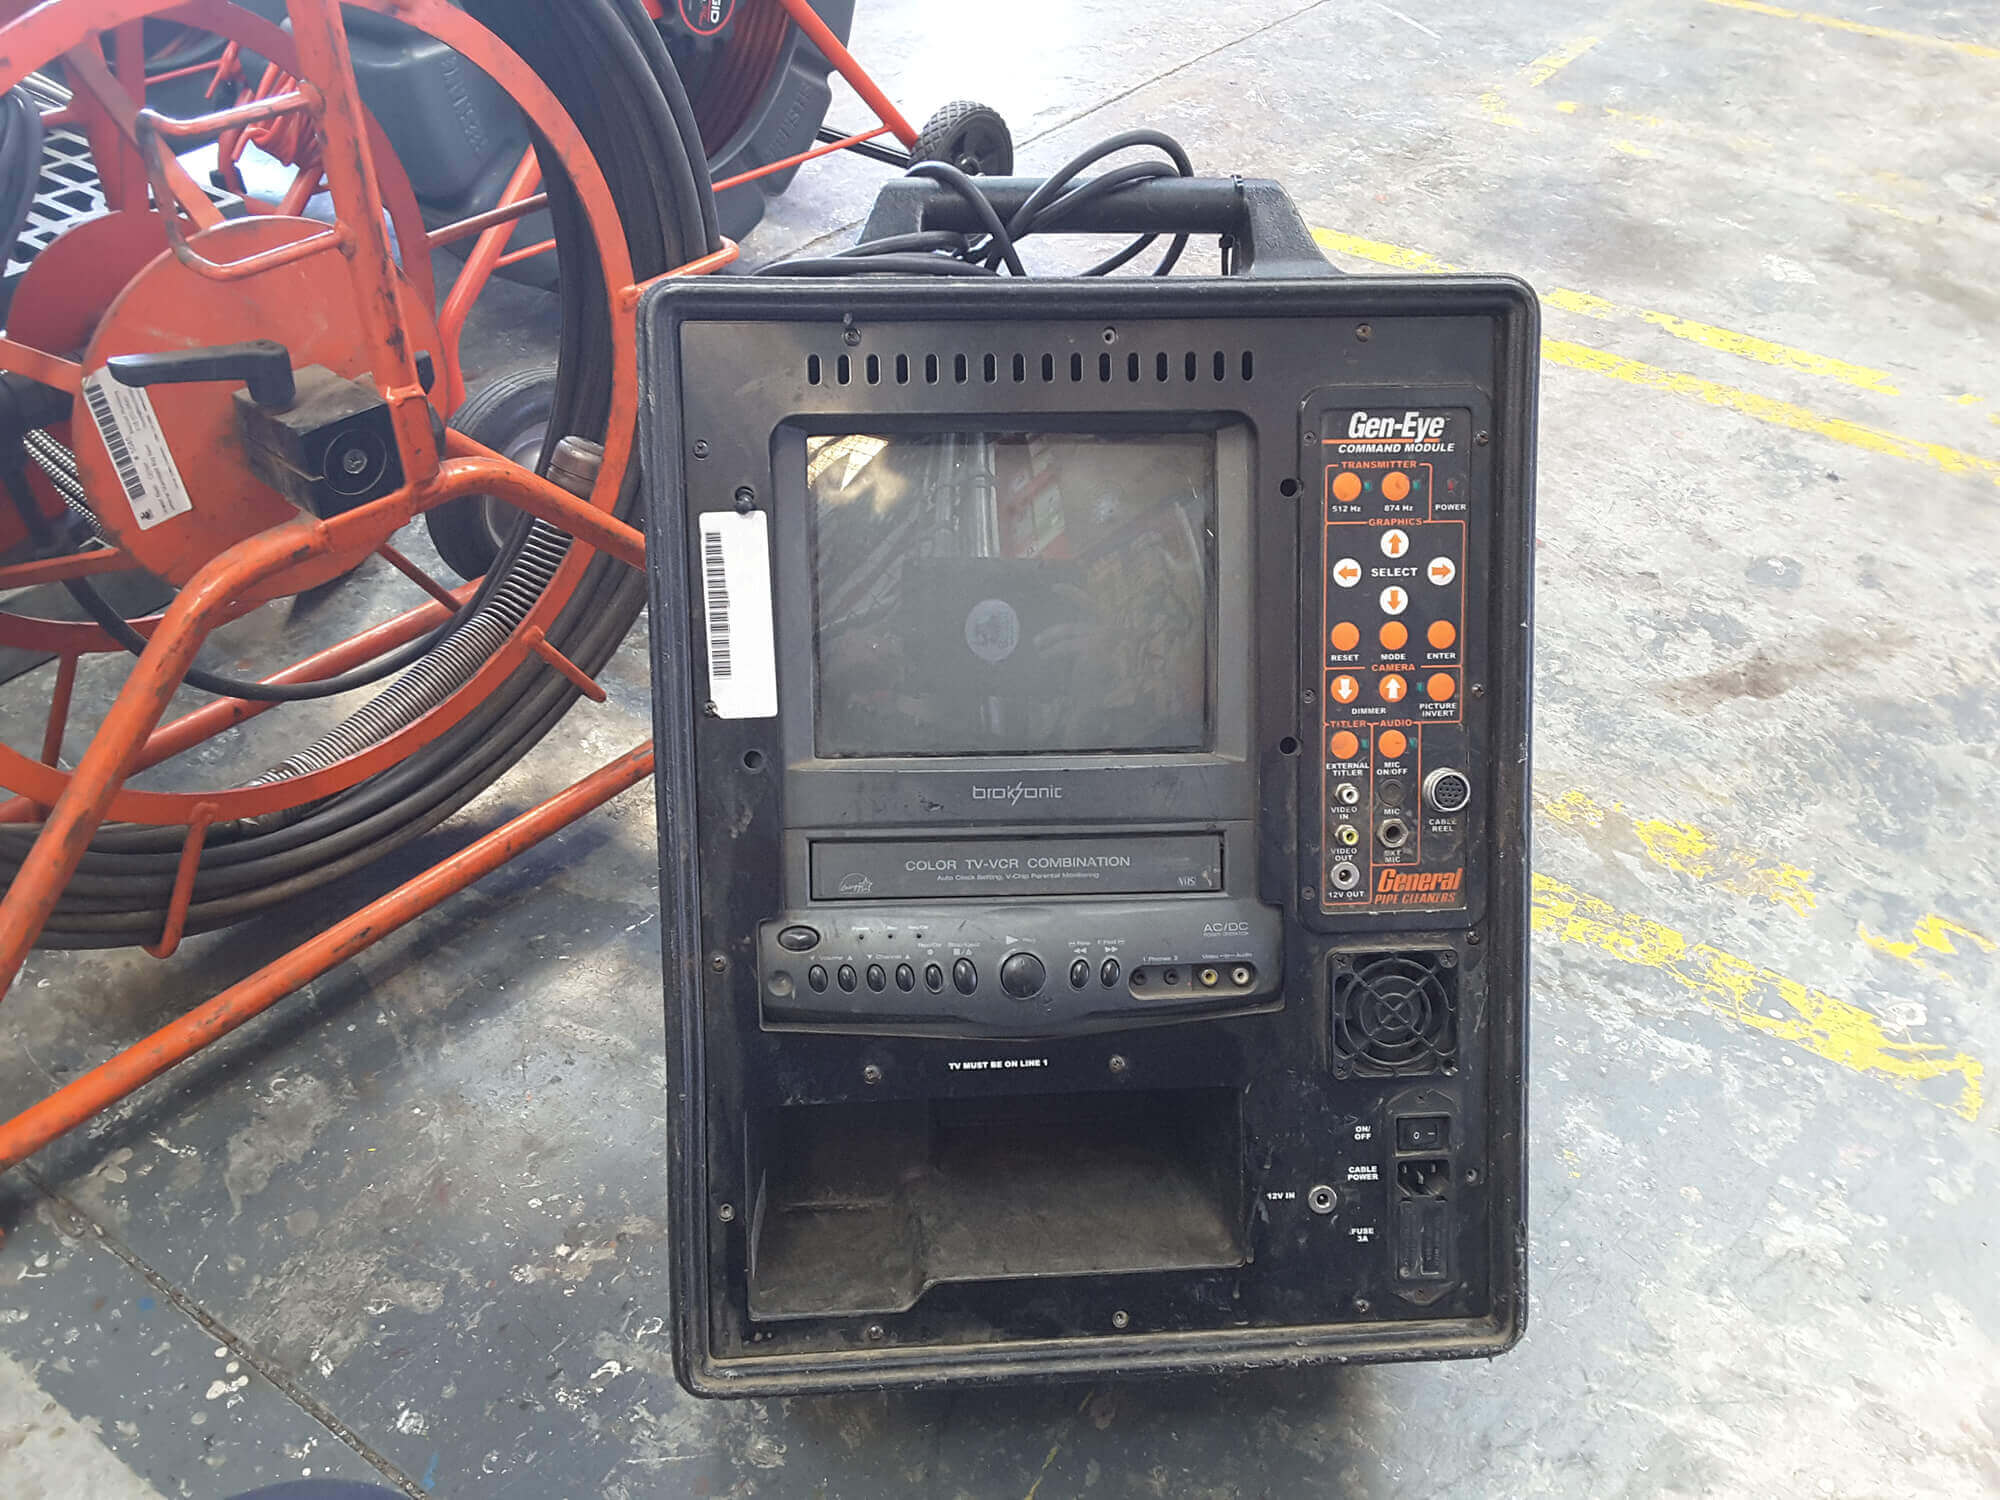 gen eye sewer vcr monitor - Sewer Monitor Service & Repair